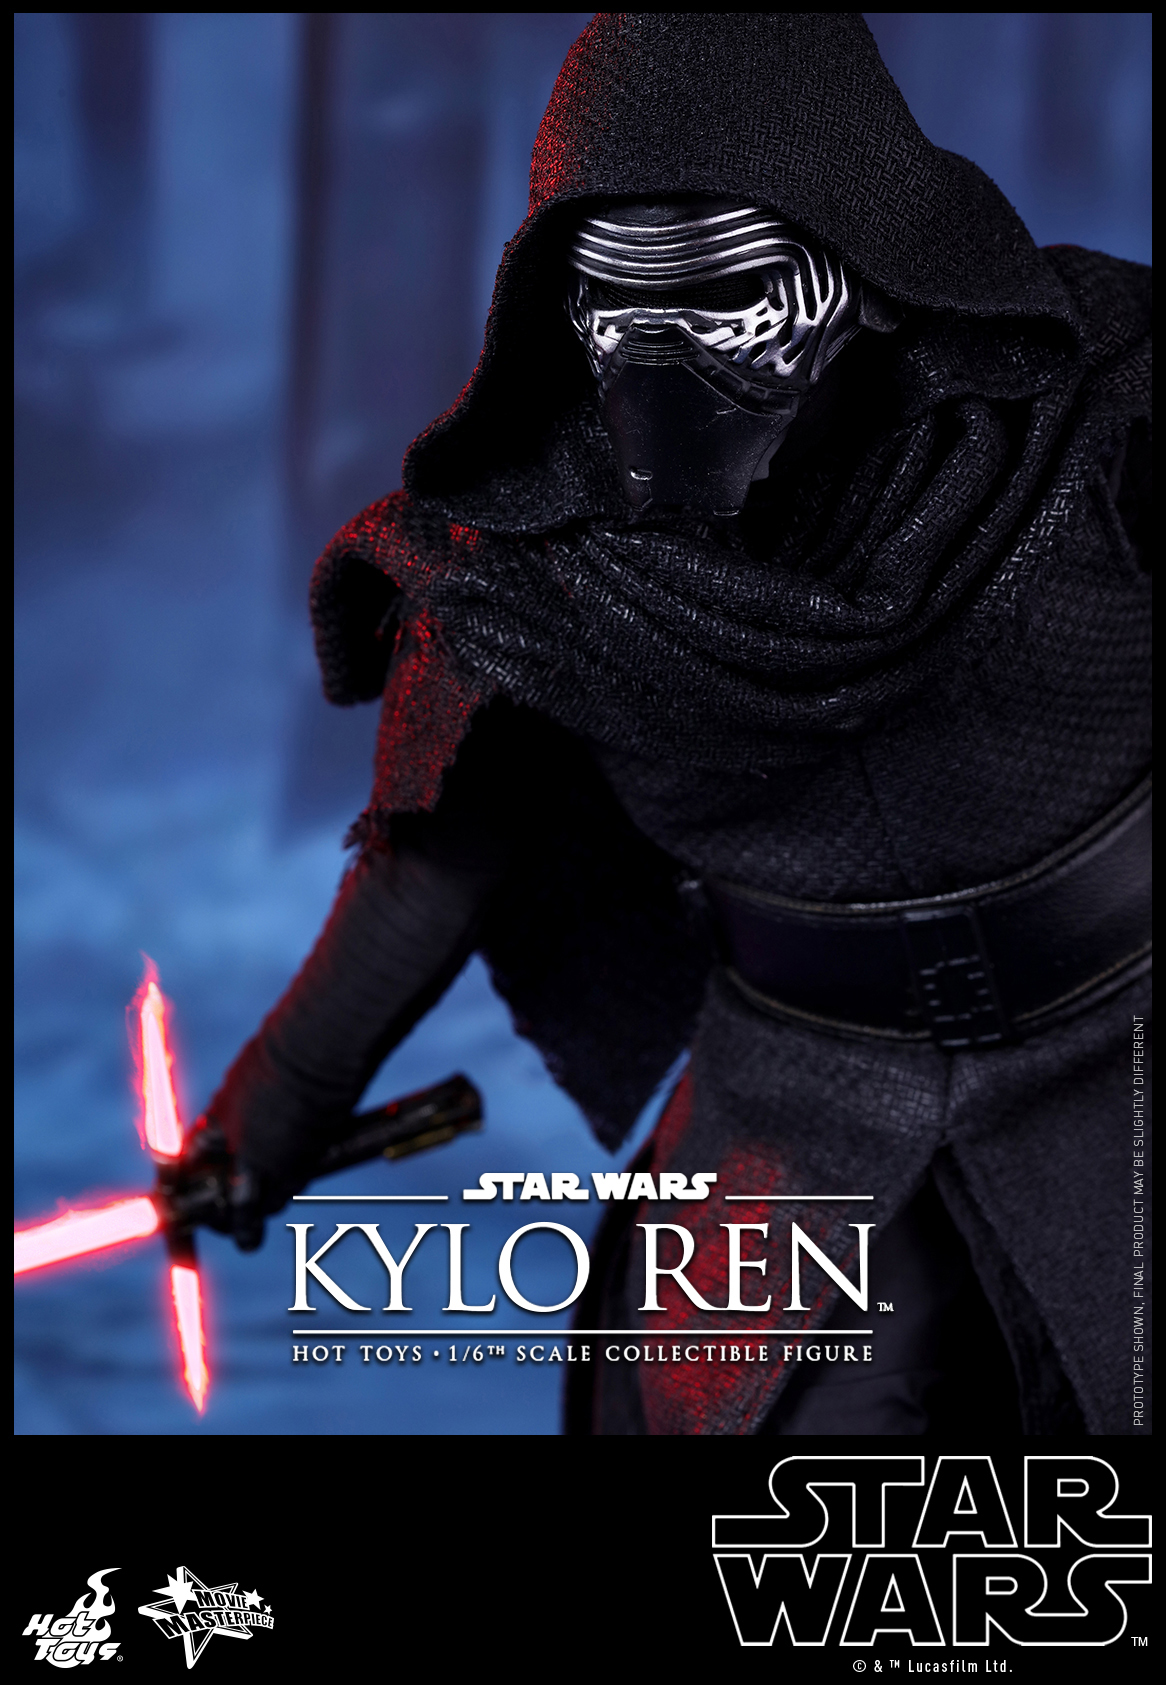 Hot Toys - Star Wars - The Force Awakens - Kylo Ren Collectible Figure